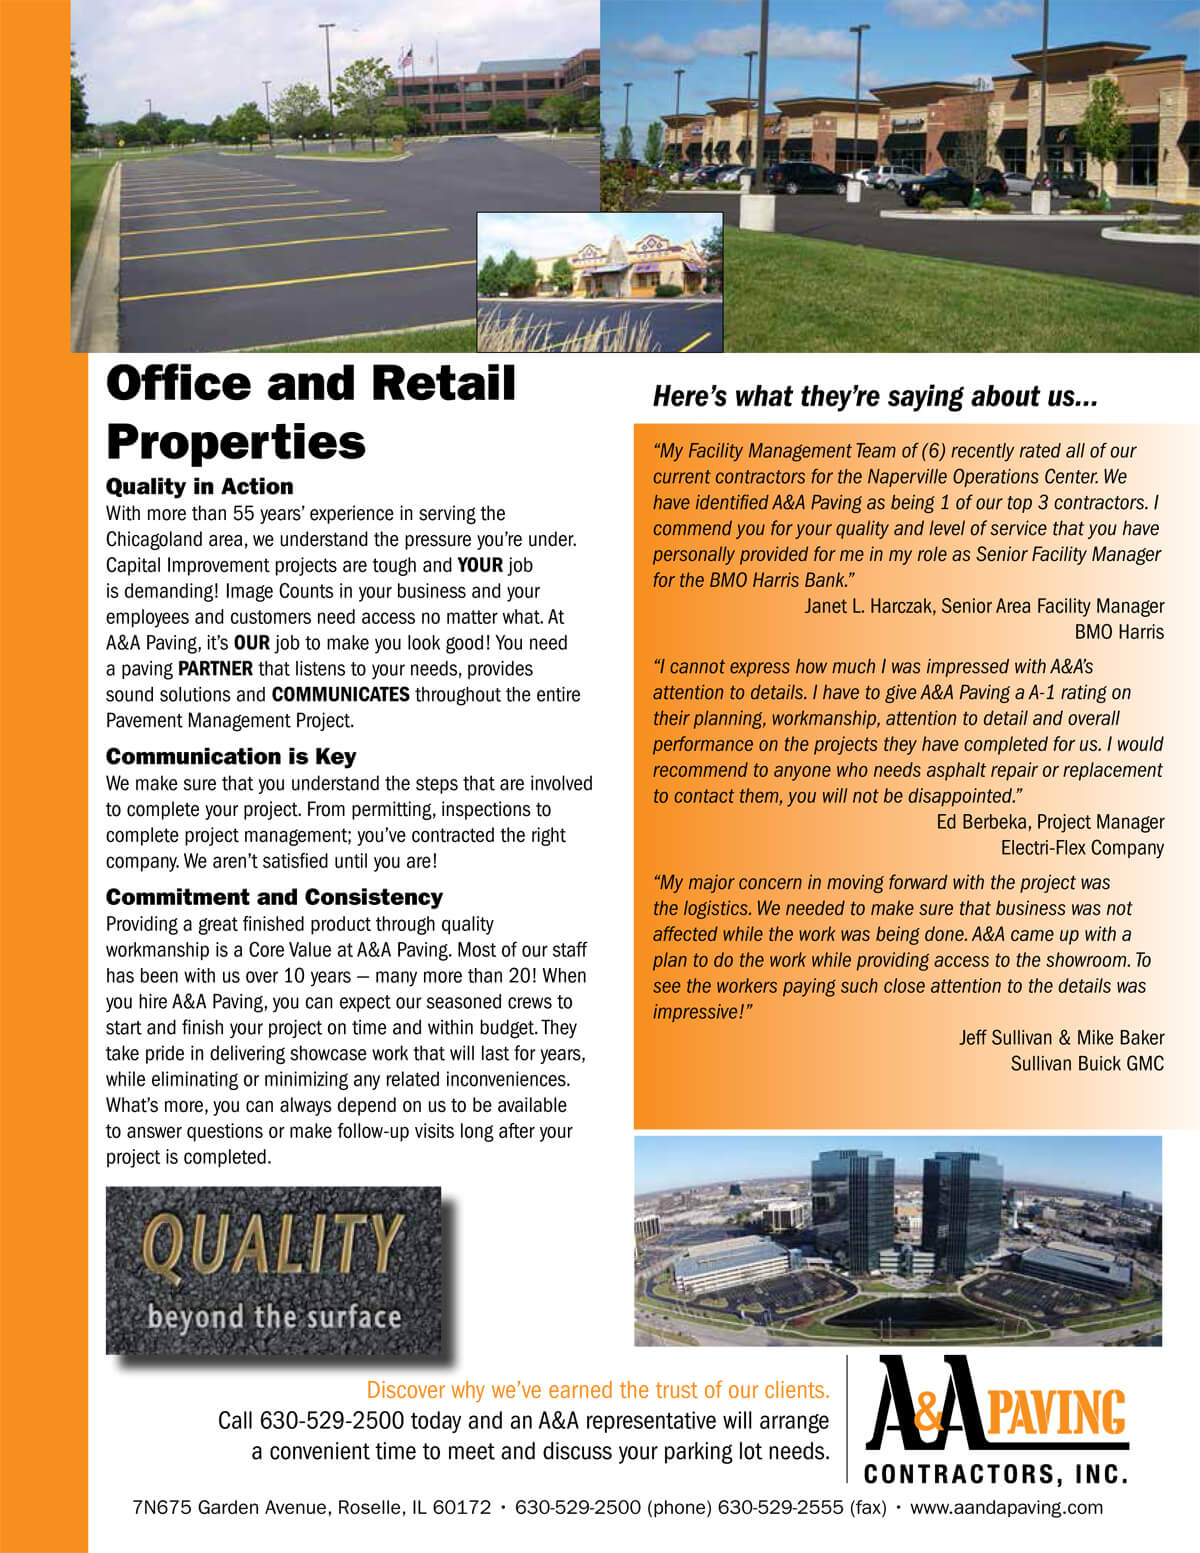 Office and Retail